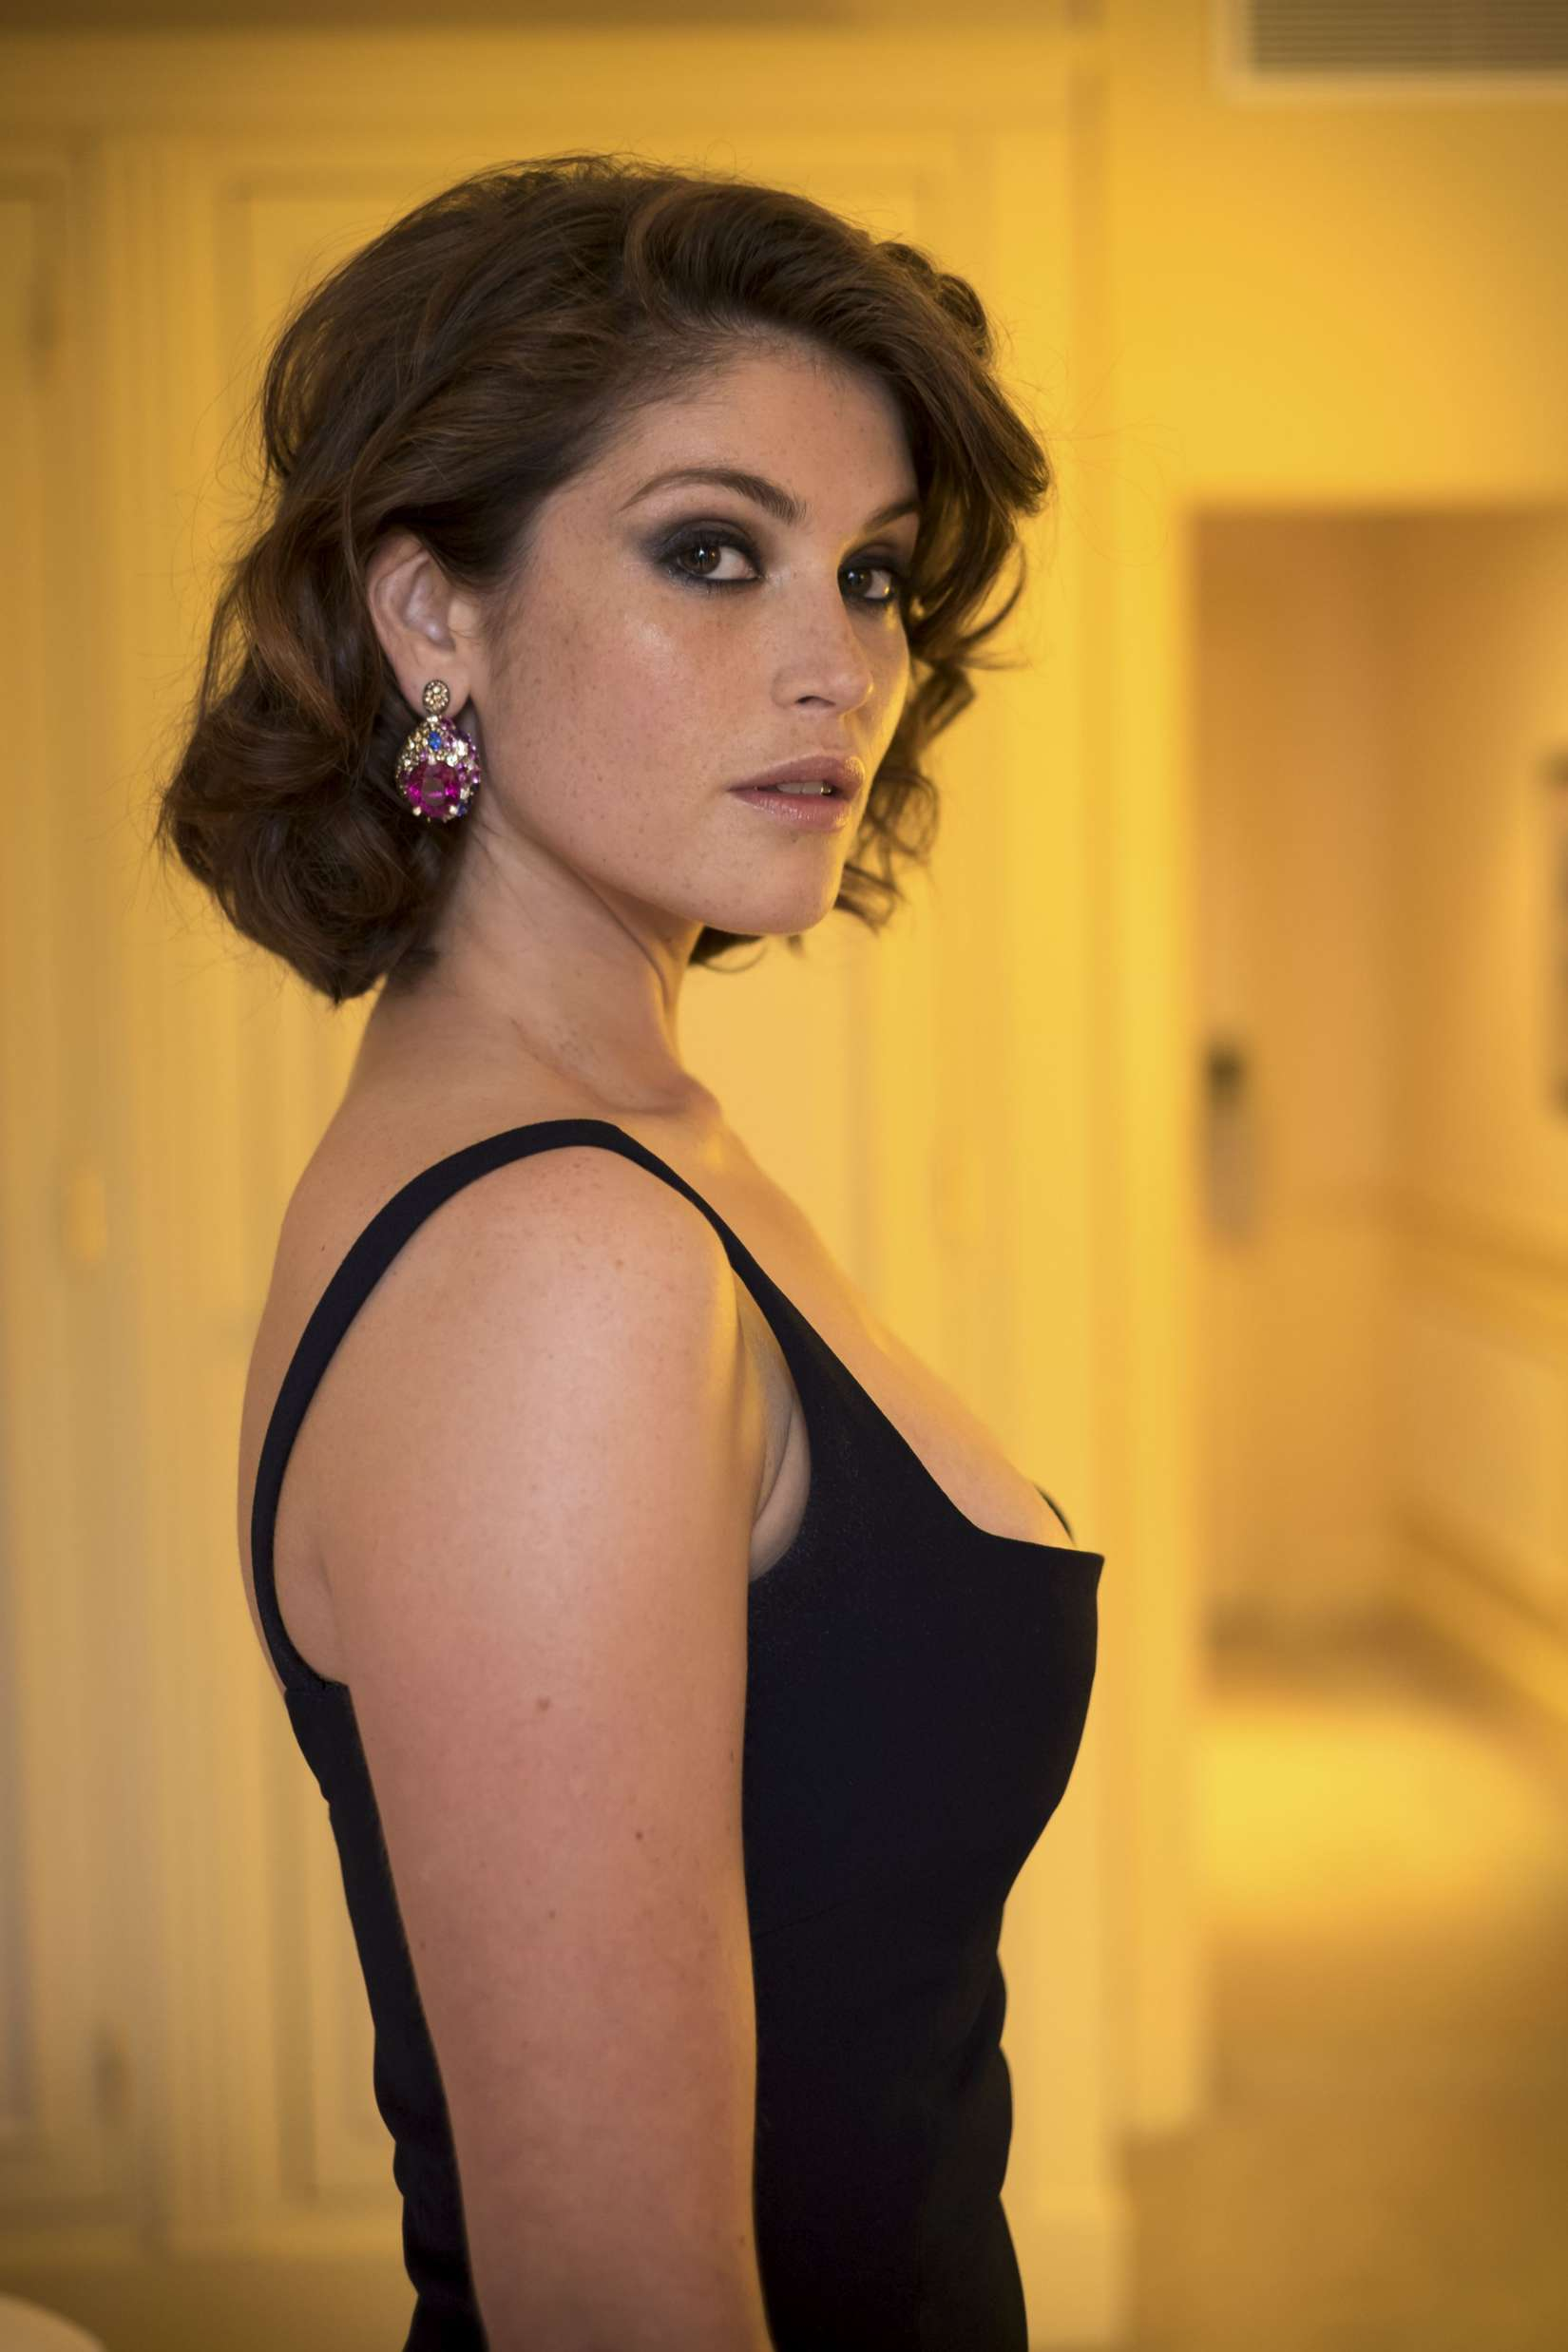 Gemma Arterton - Photos, News, Filmography, Quotes And Facts